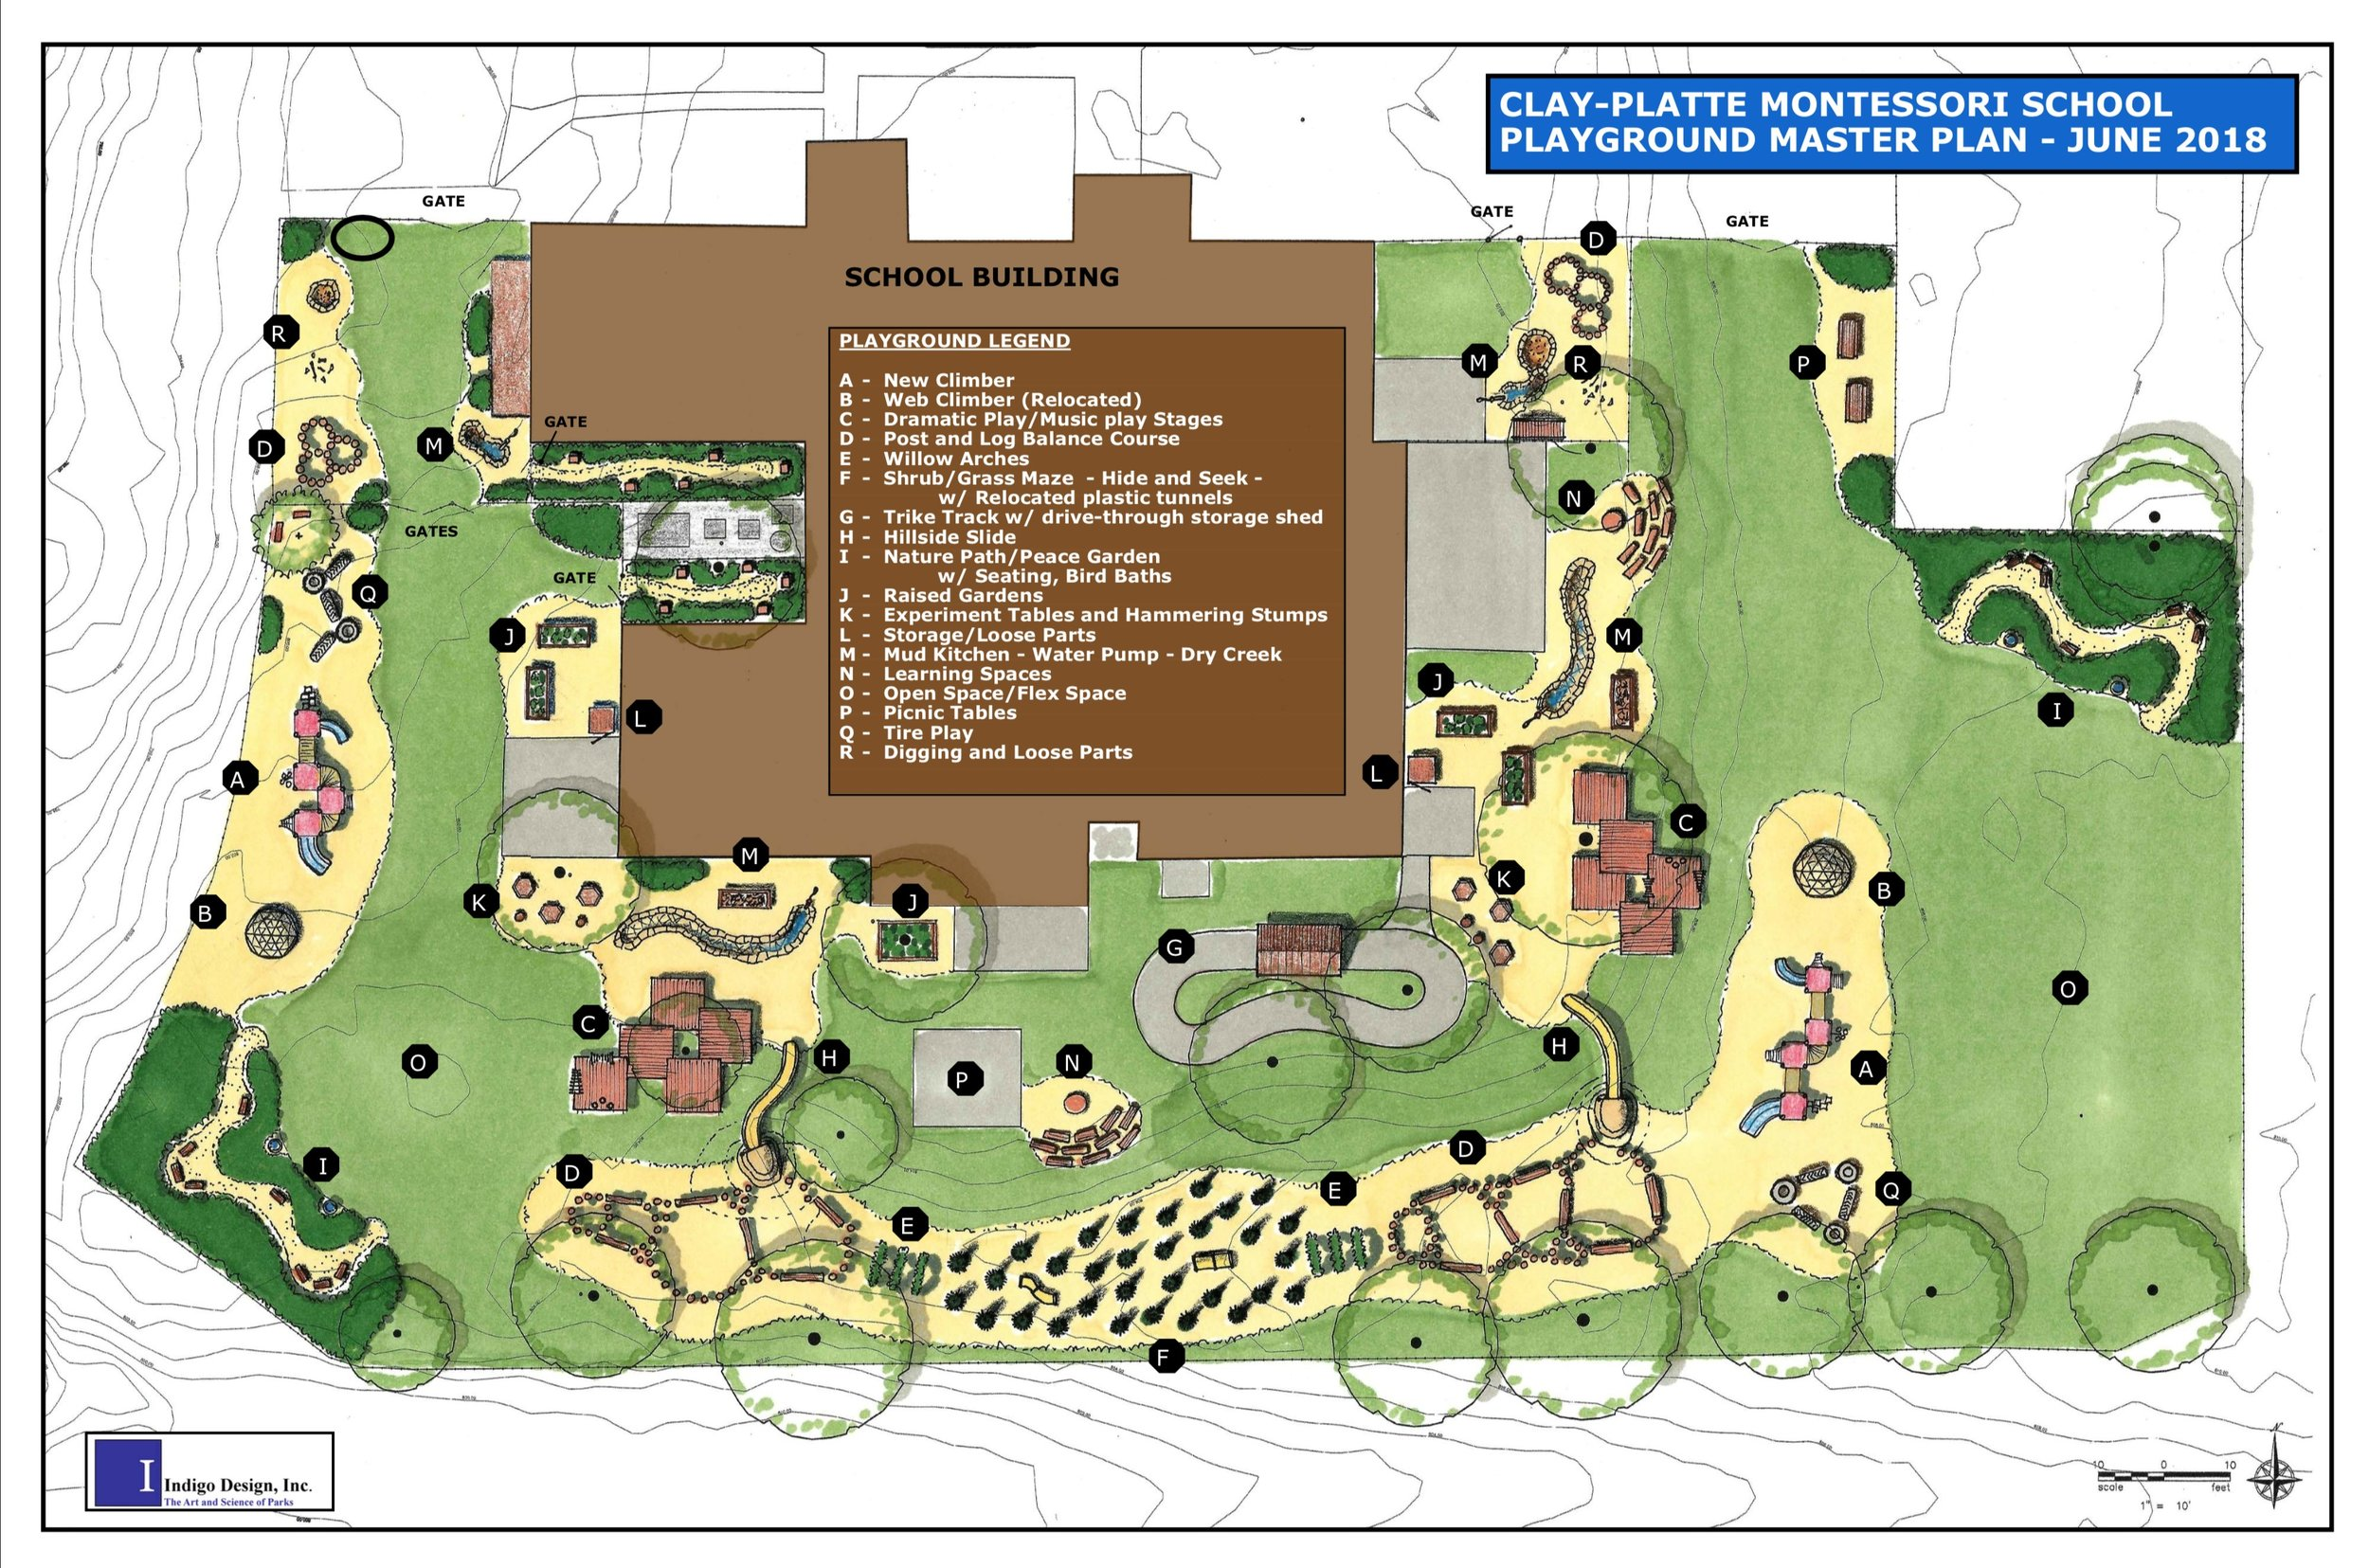 Playscape Master Plan.jpg